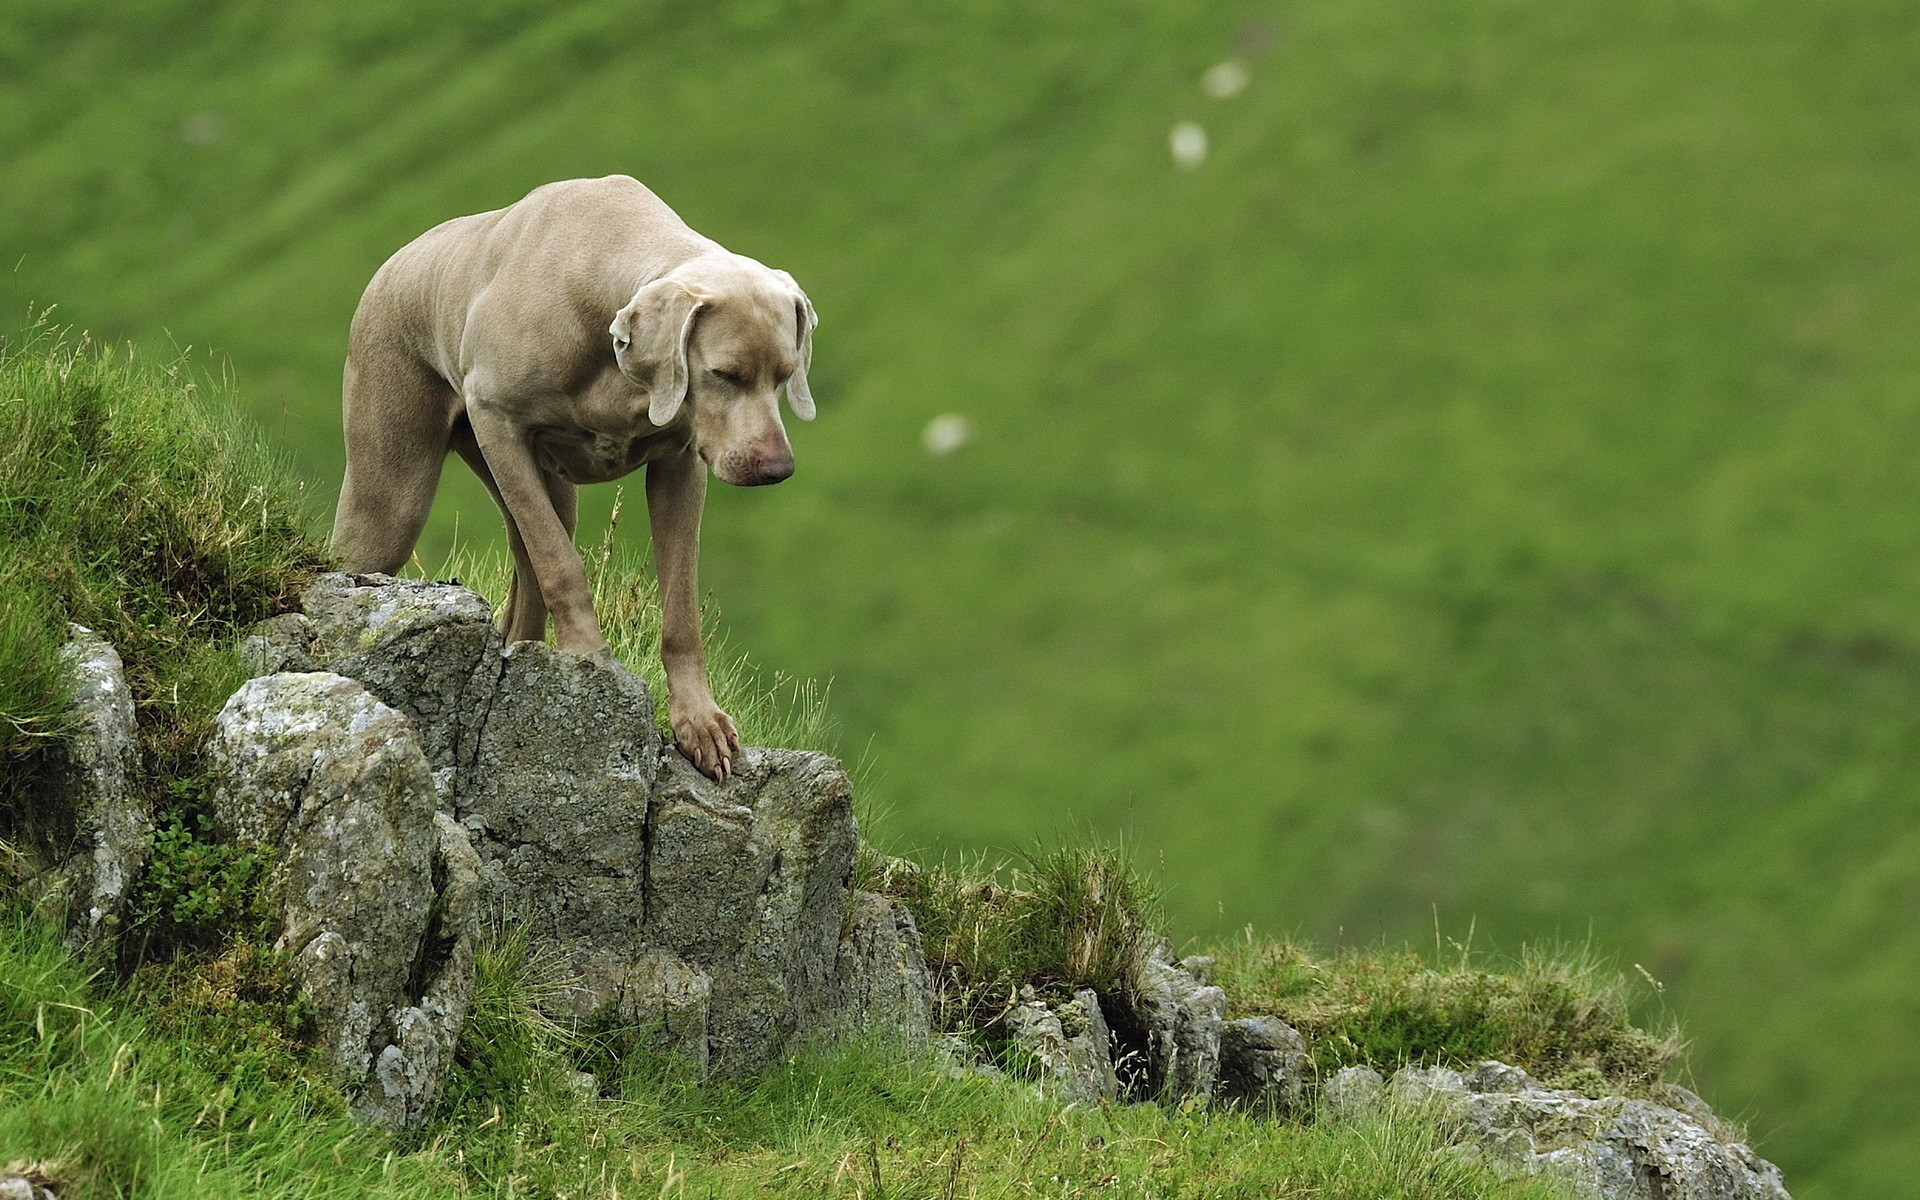 weimaraner dog Full HD Wallpaper and Background ...